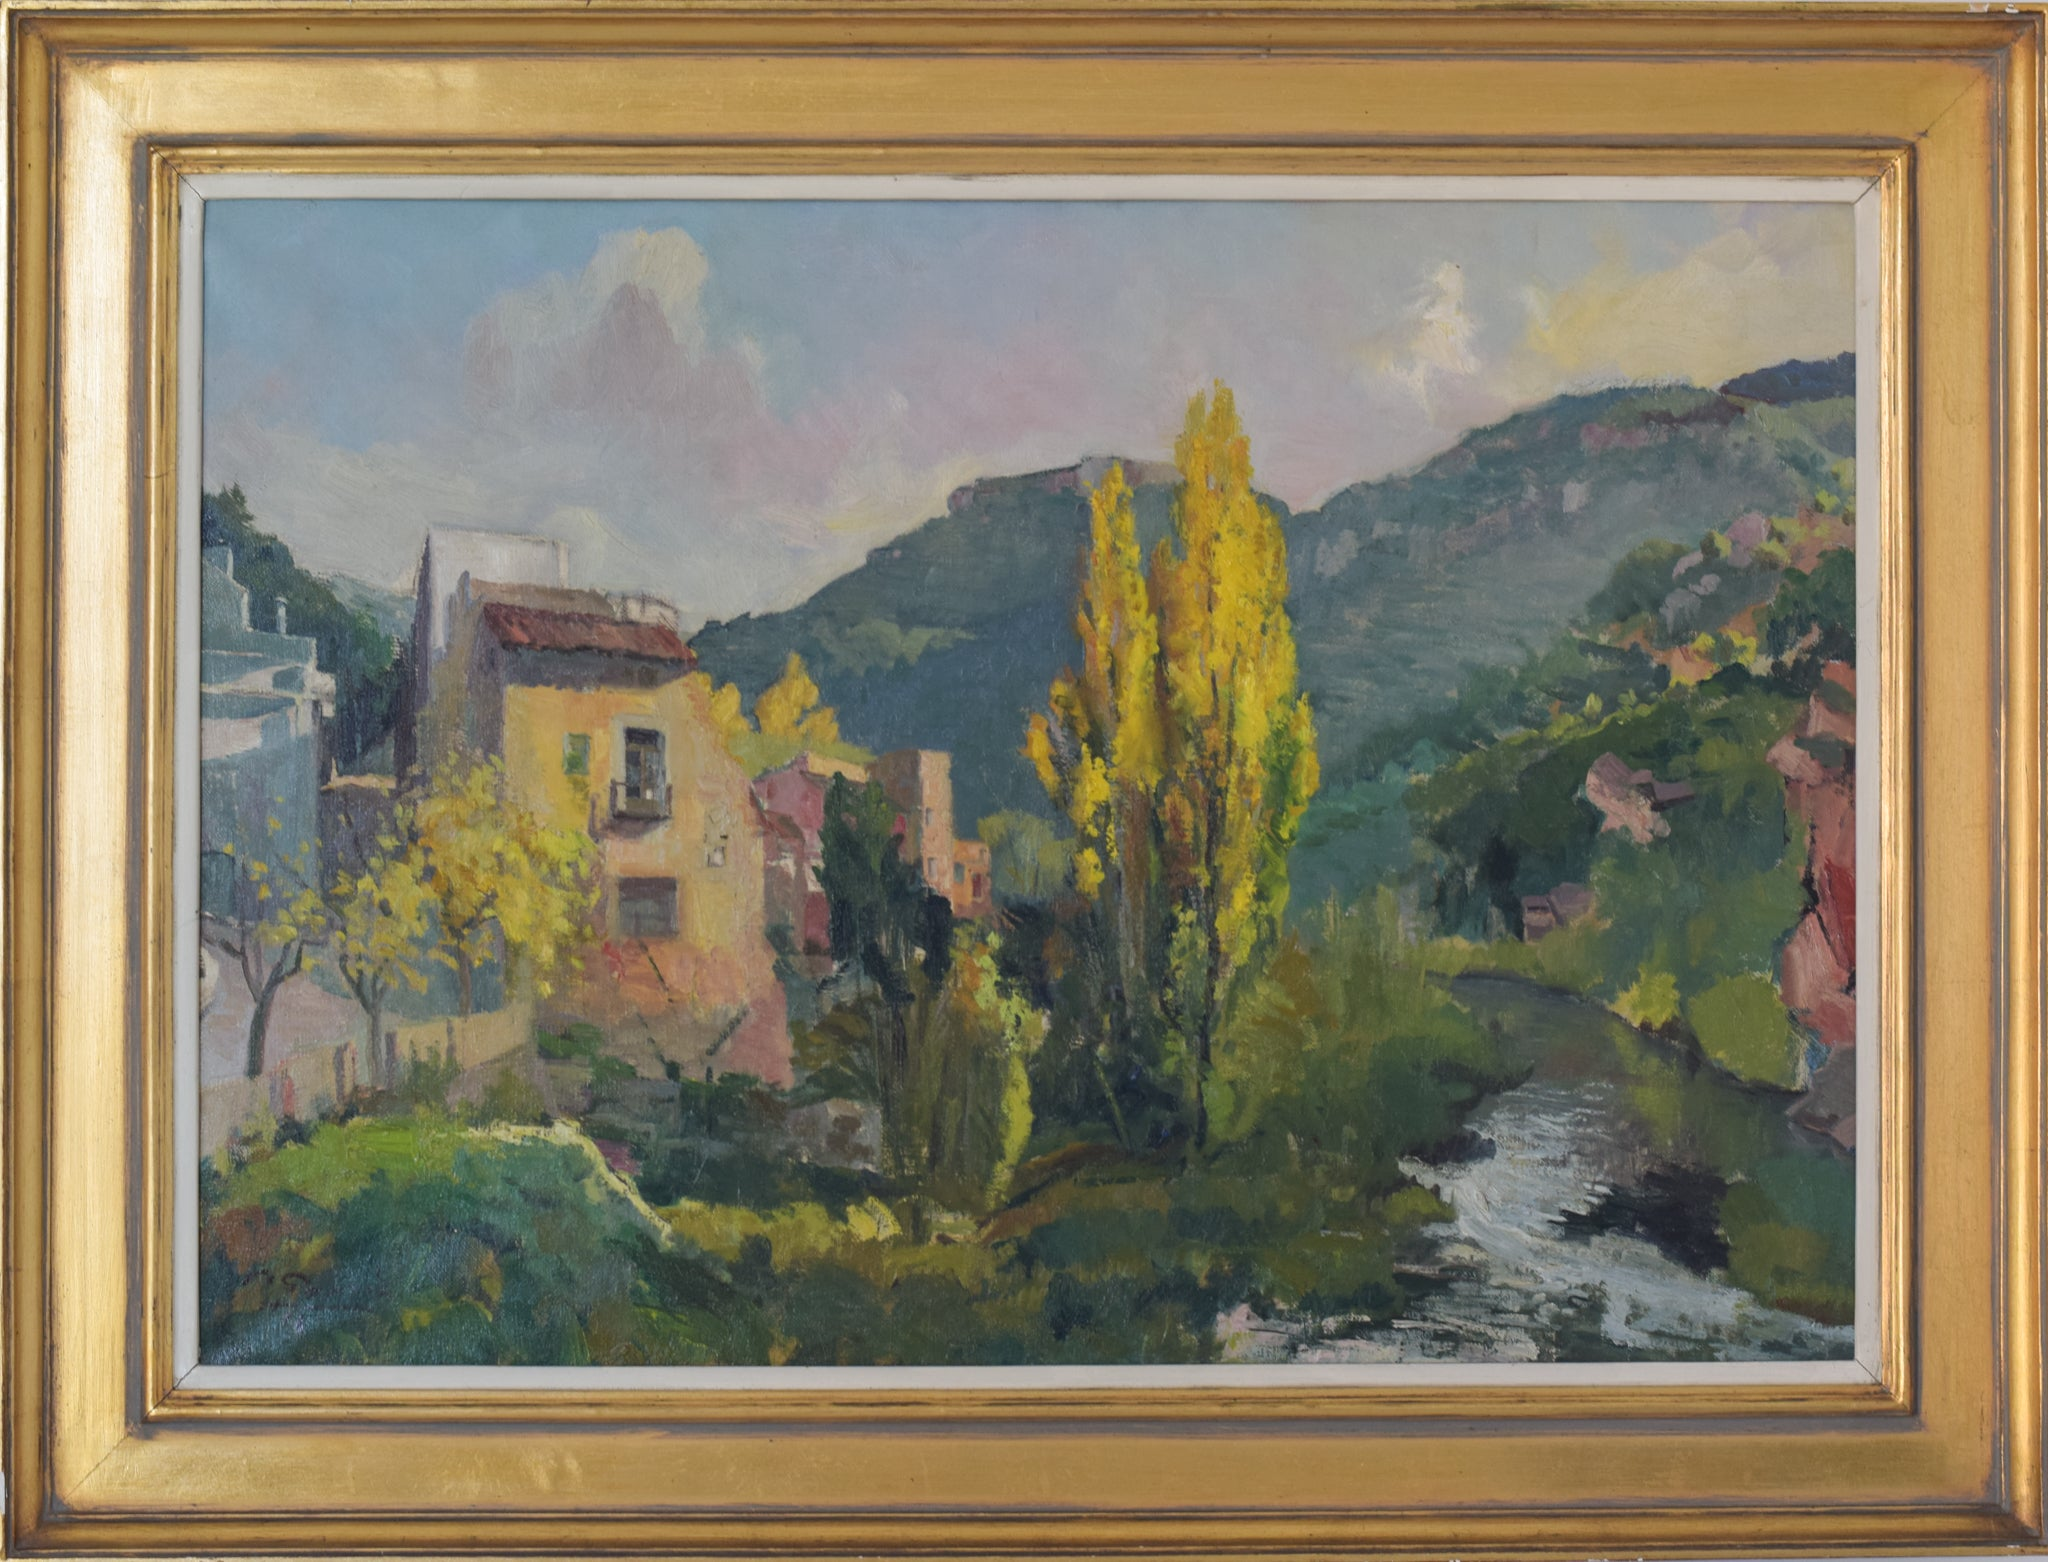 Autumn Landscape with a Riverside Village_Framed